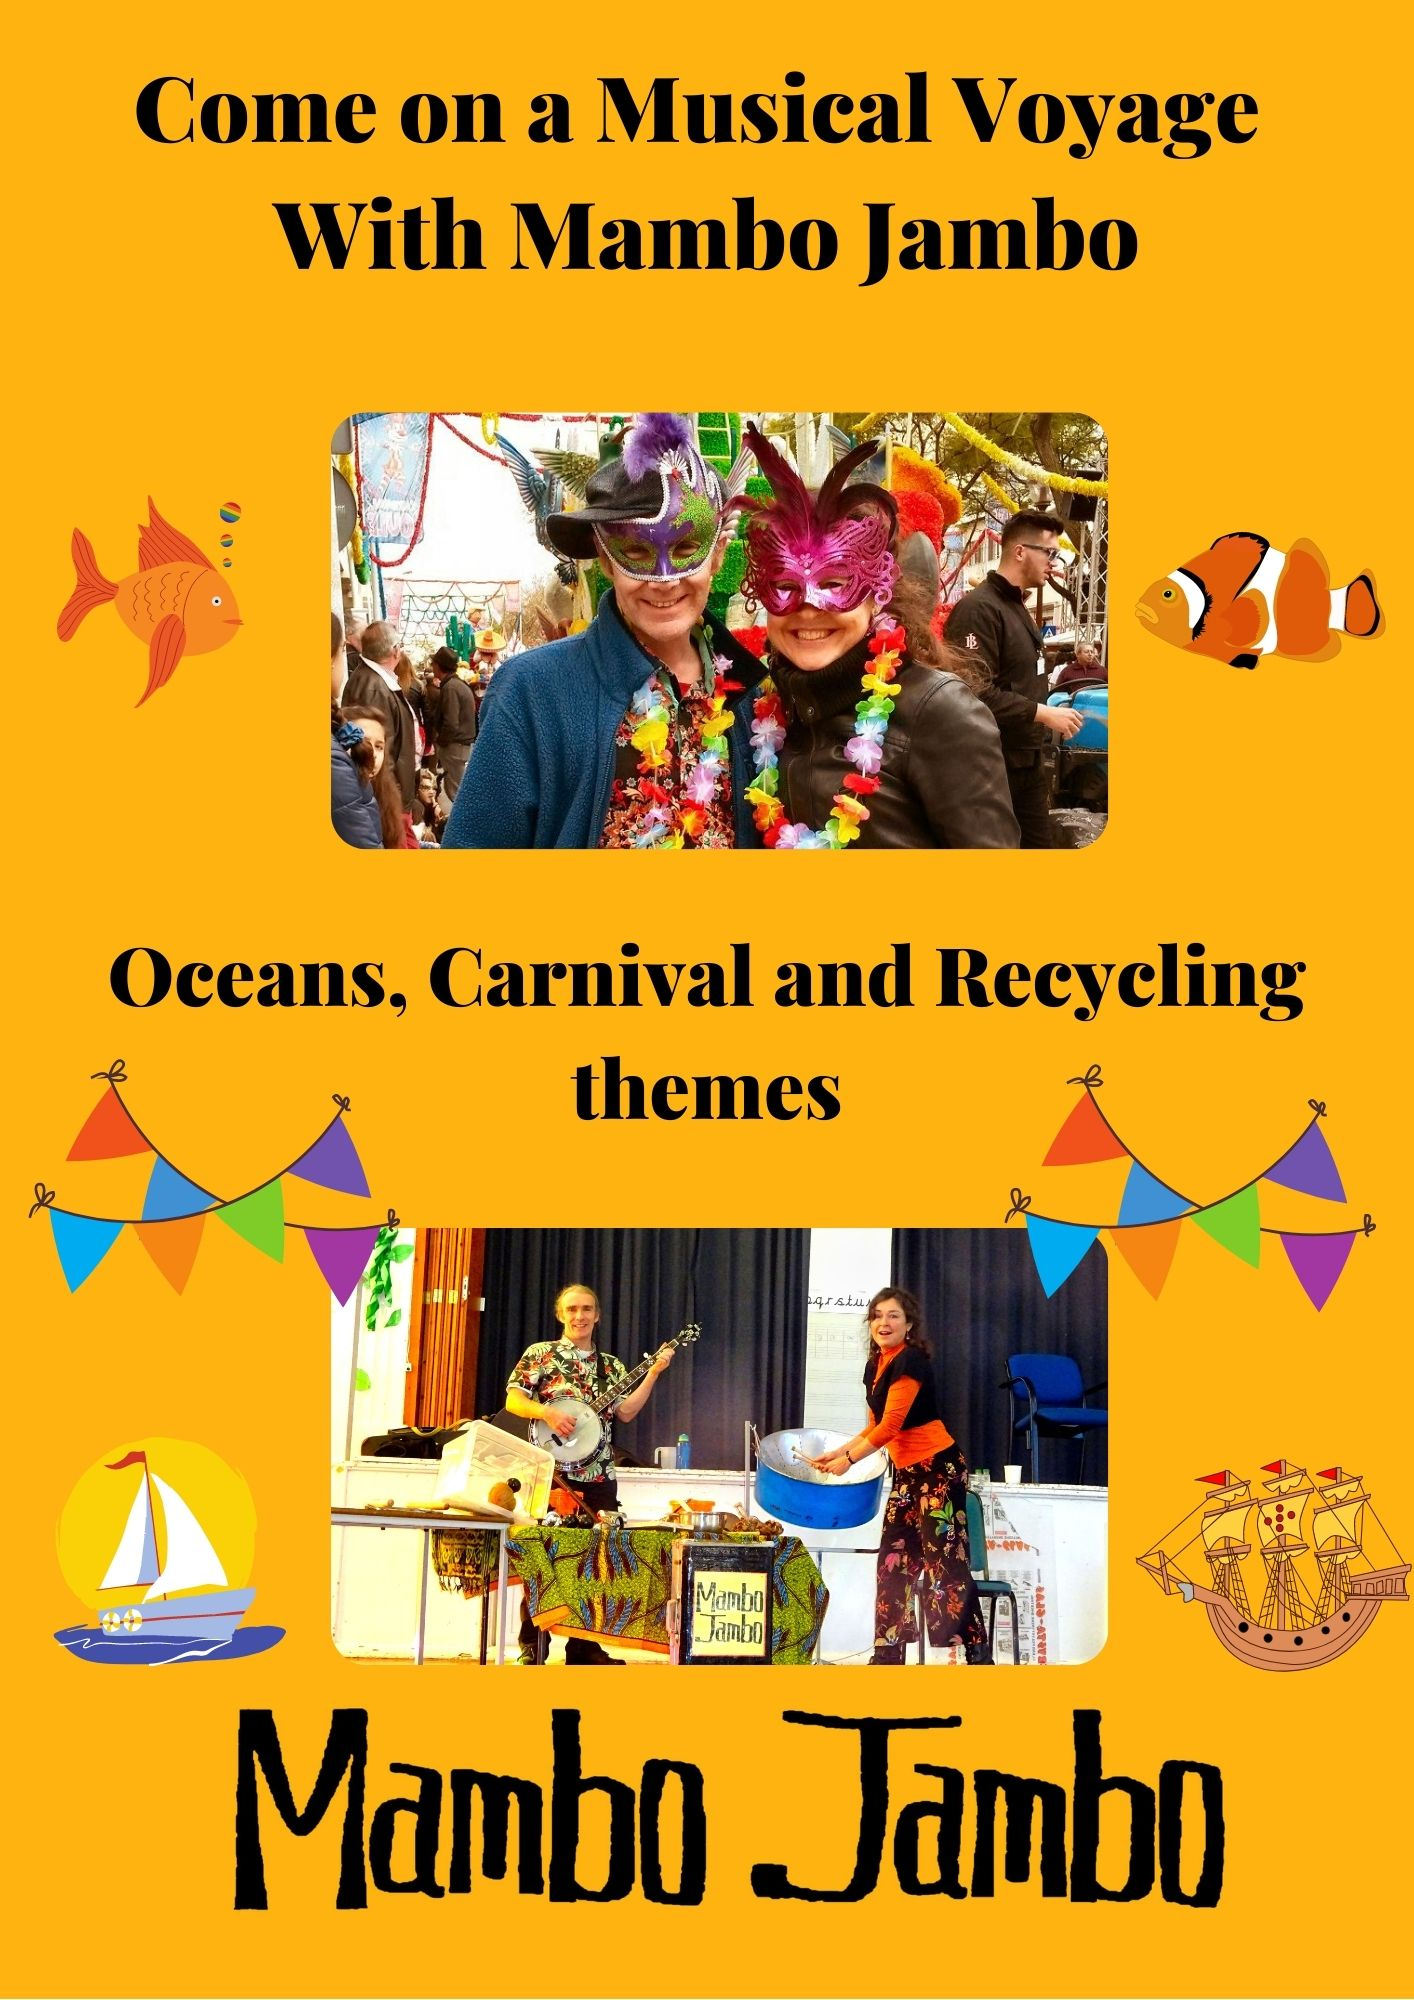 Come on a musical voyage with Mambo Jambo, Oceans, Carnival and Recycling themes